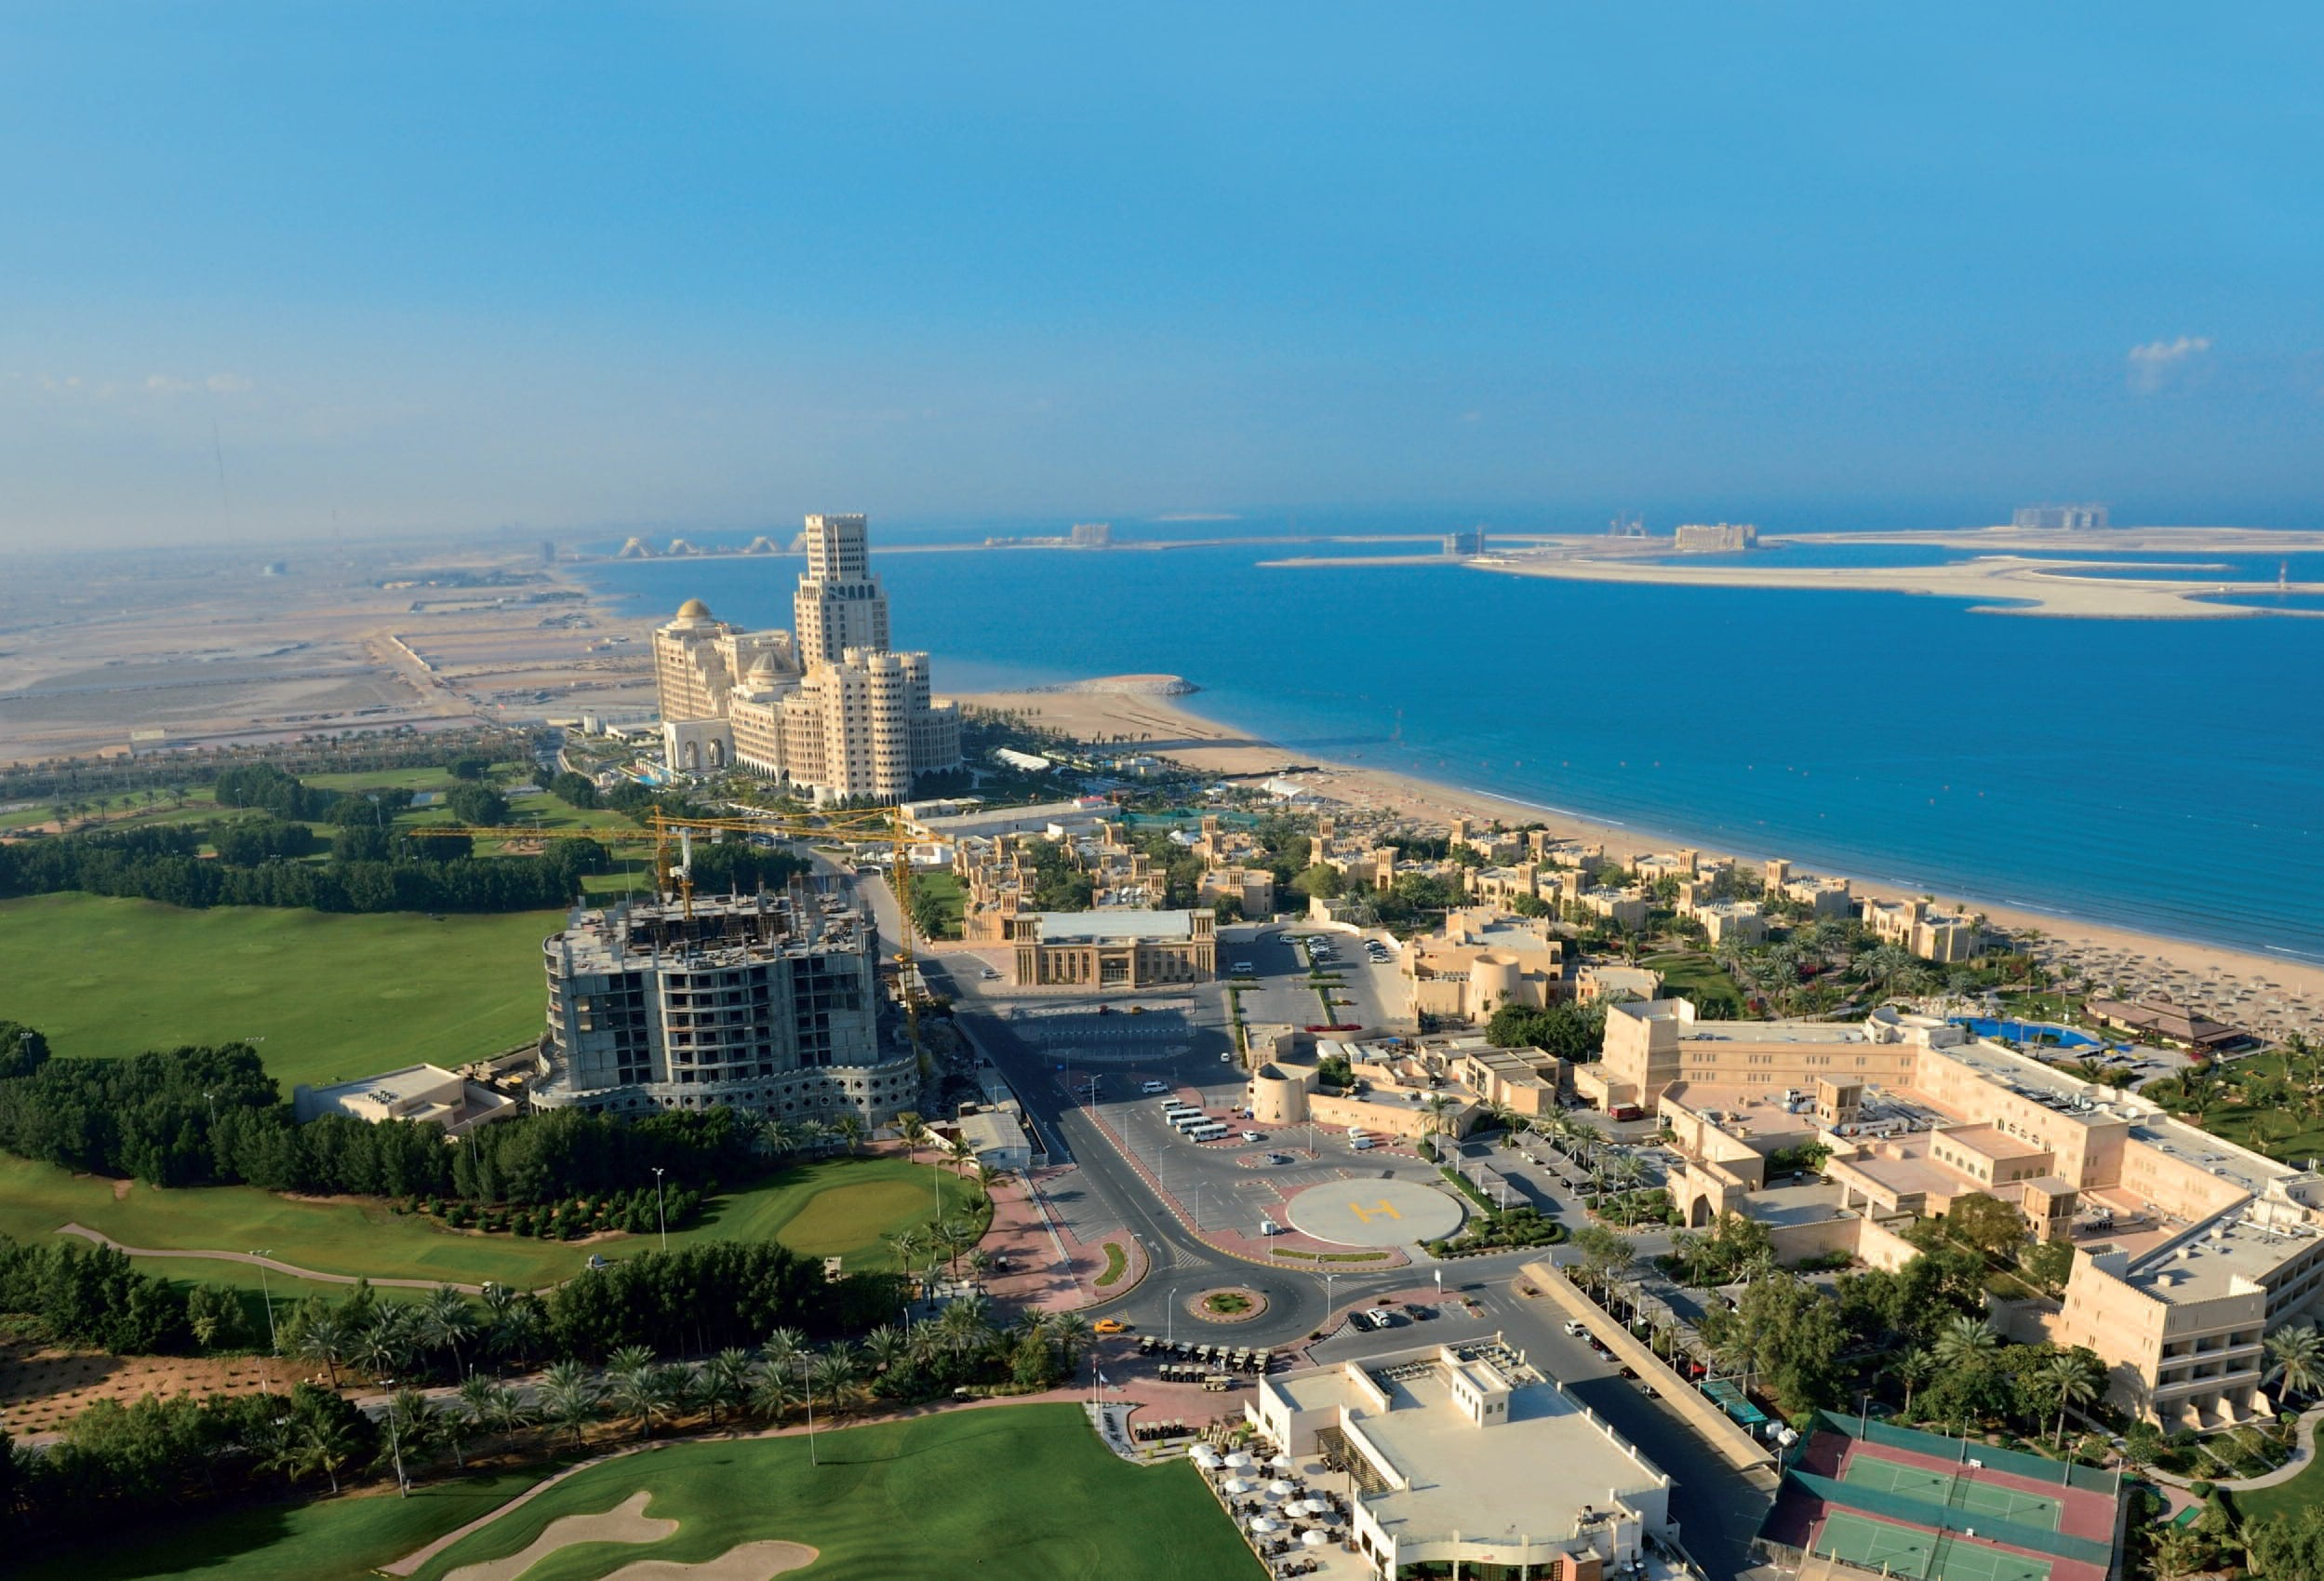 Ras Al Khaimah Top 10 Things To Do The Finest Emirates Luxus Magazin Lifestyle Travel